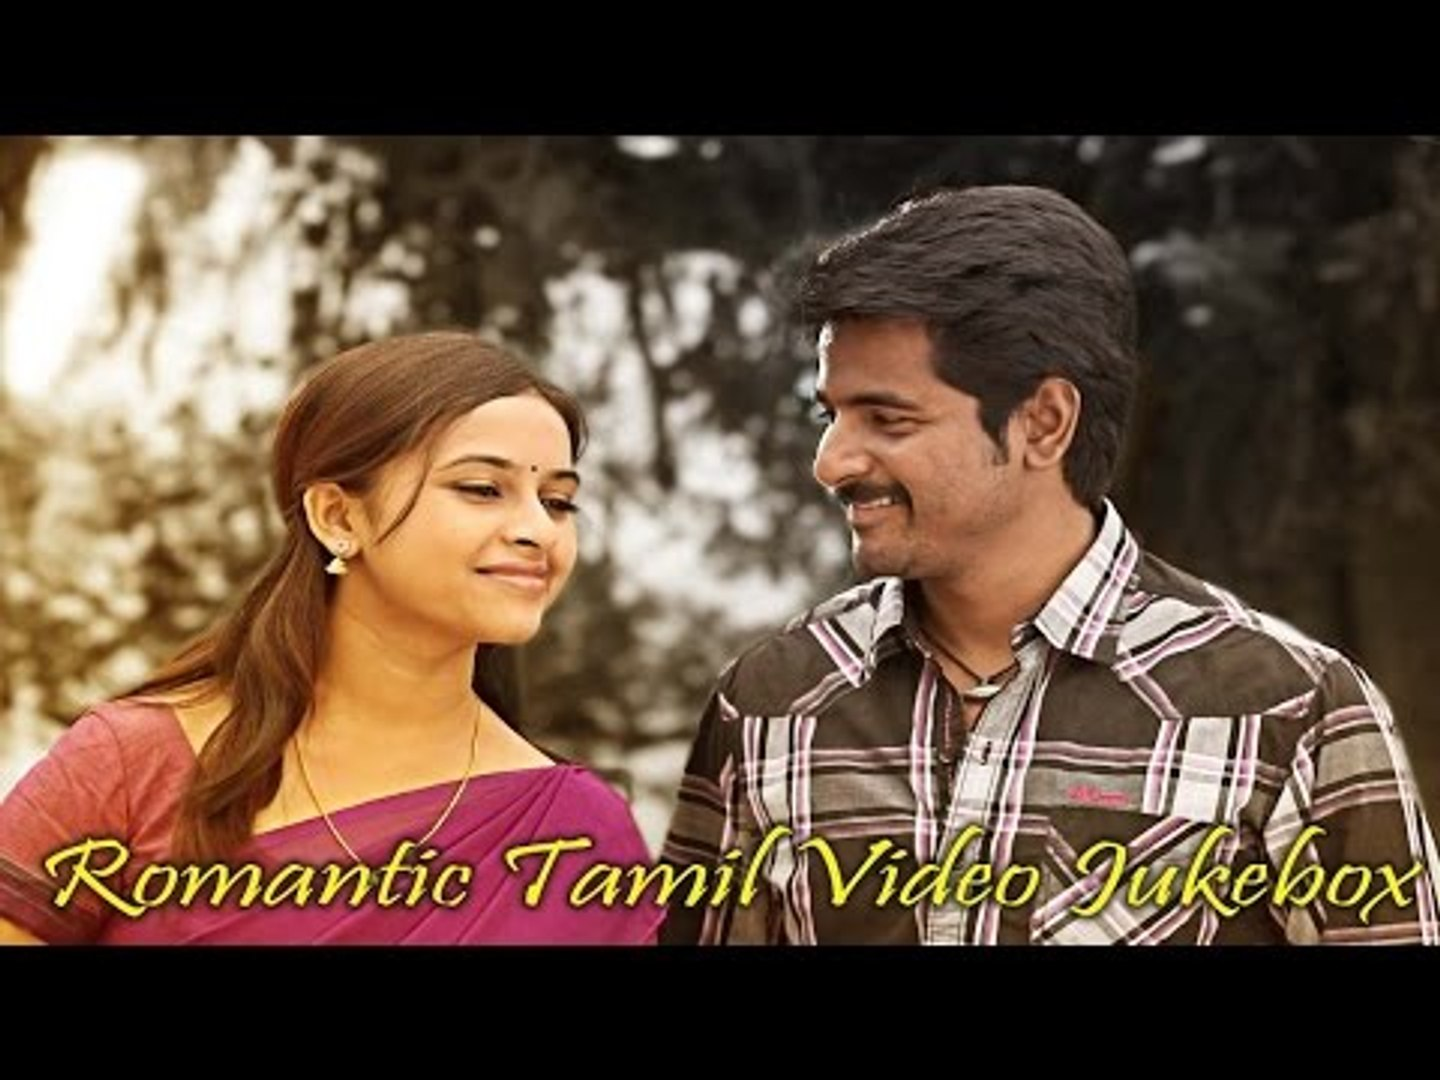 Romantic Tamil Video Jukebox ♥ Super Hit Kollywood Love Songs ♥ Tamil Cinema Super Hit Songs  ♥